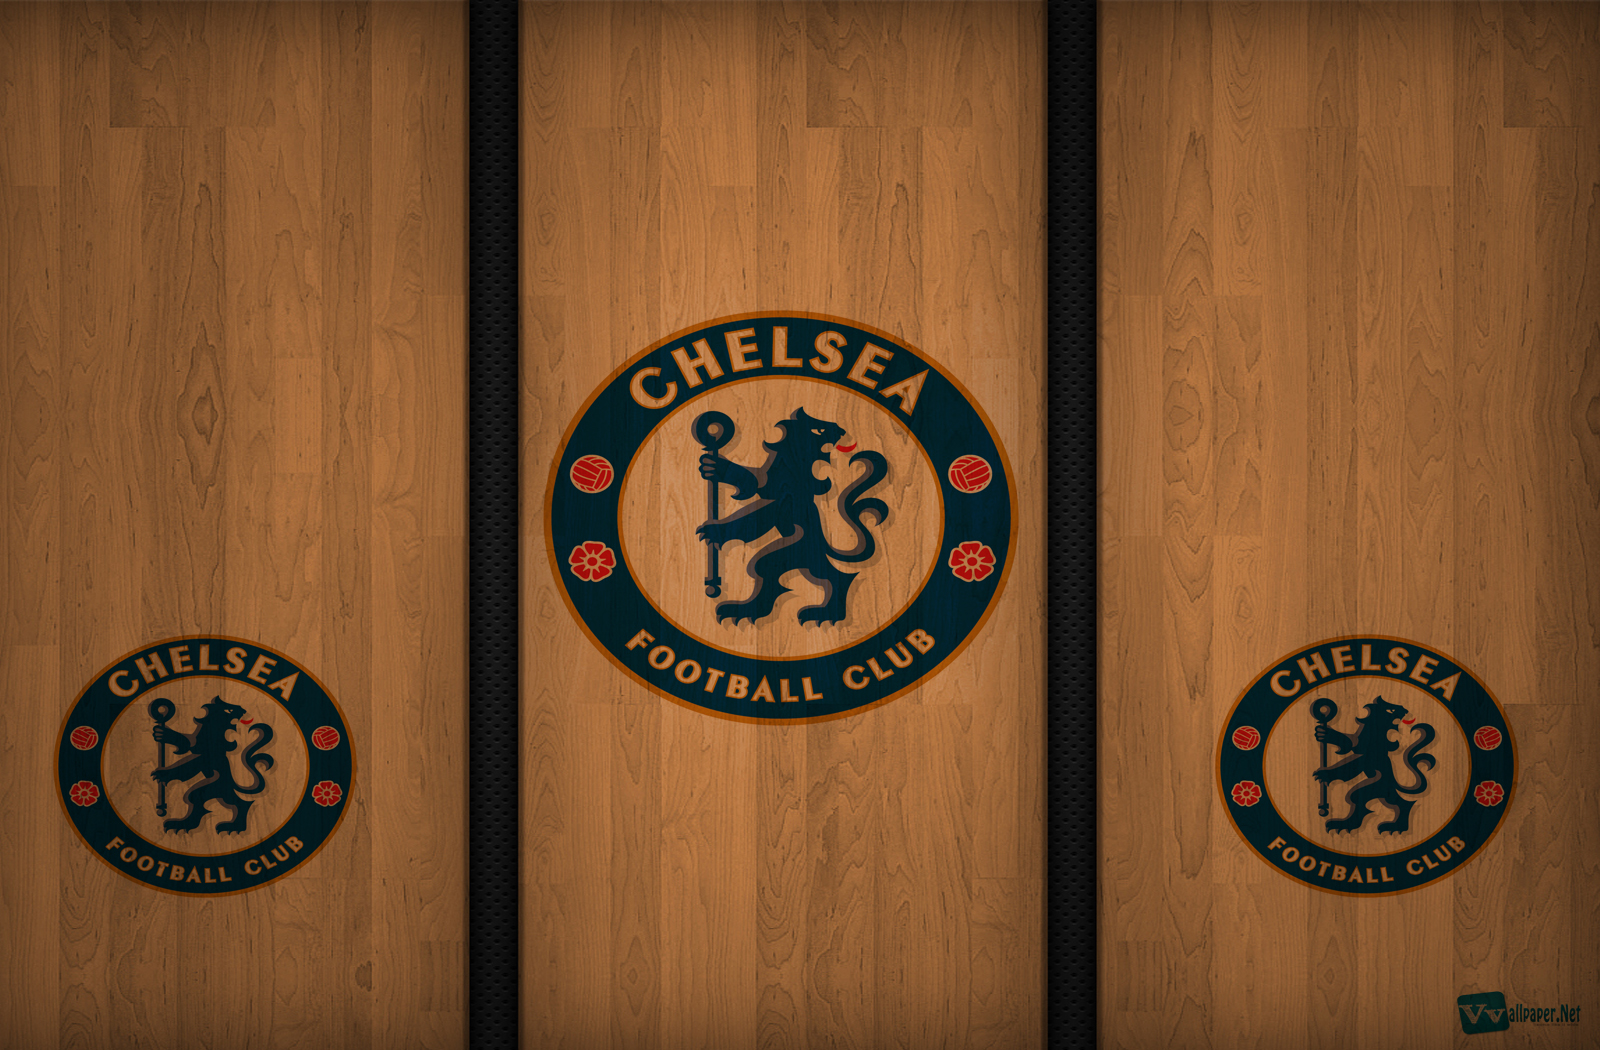 Desktop wallpapers hd chelsea football wallpaper chelsea football wallpaper voltagebd Gallery